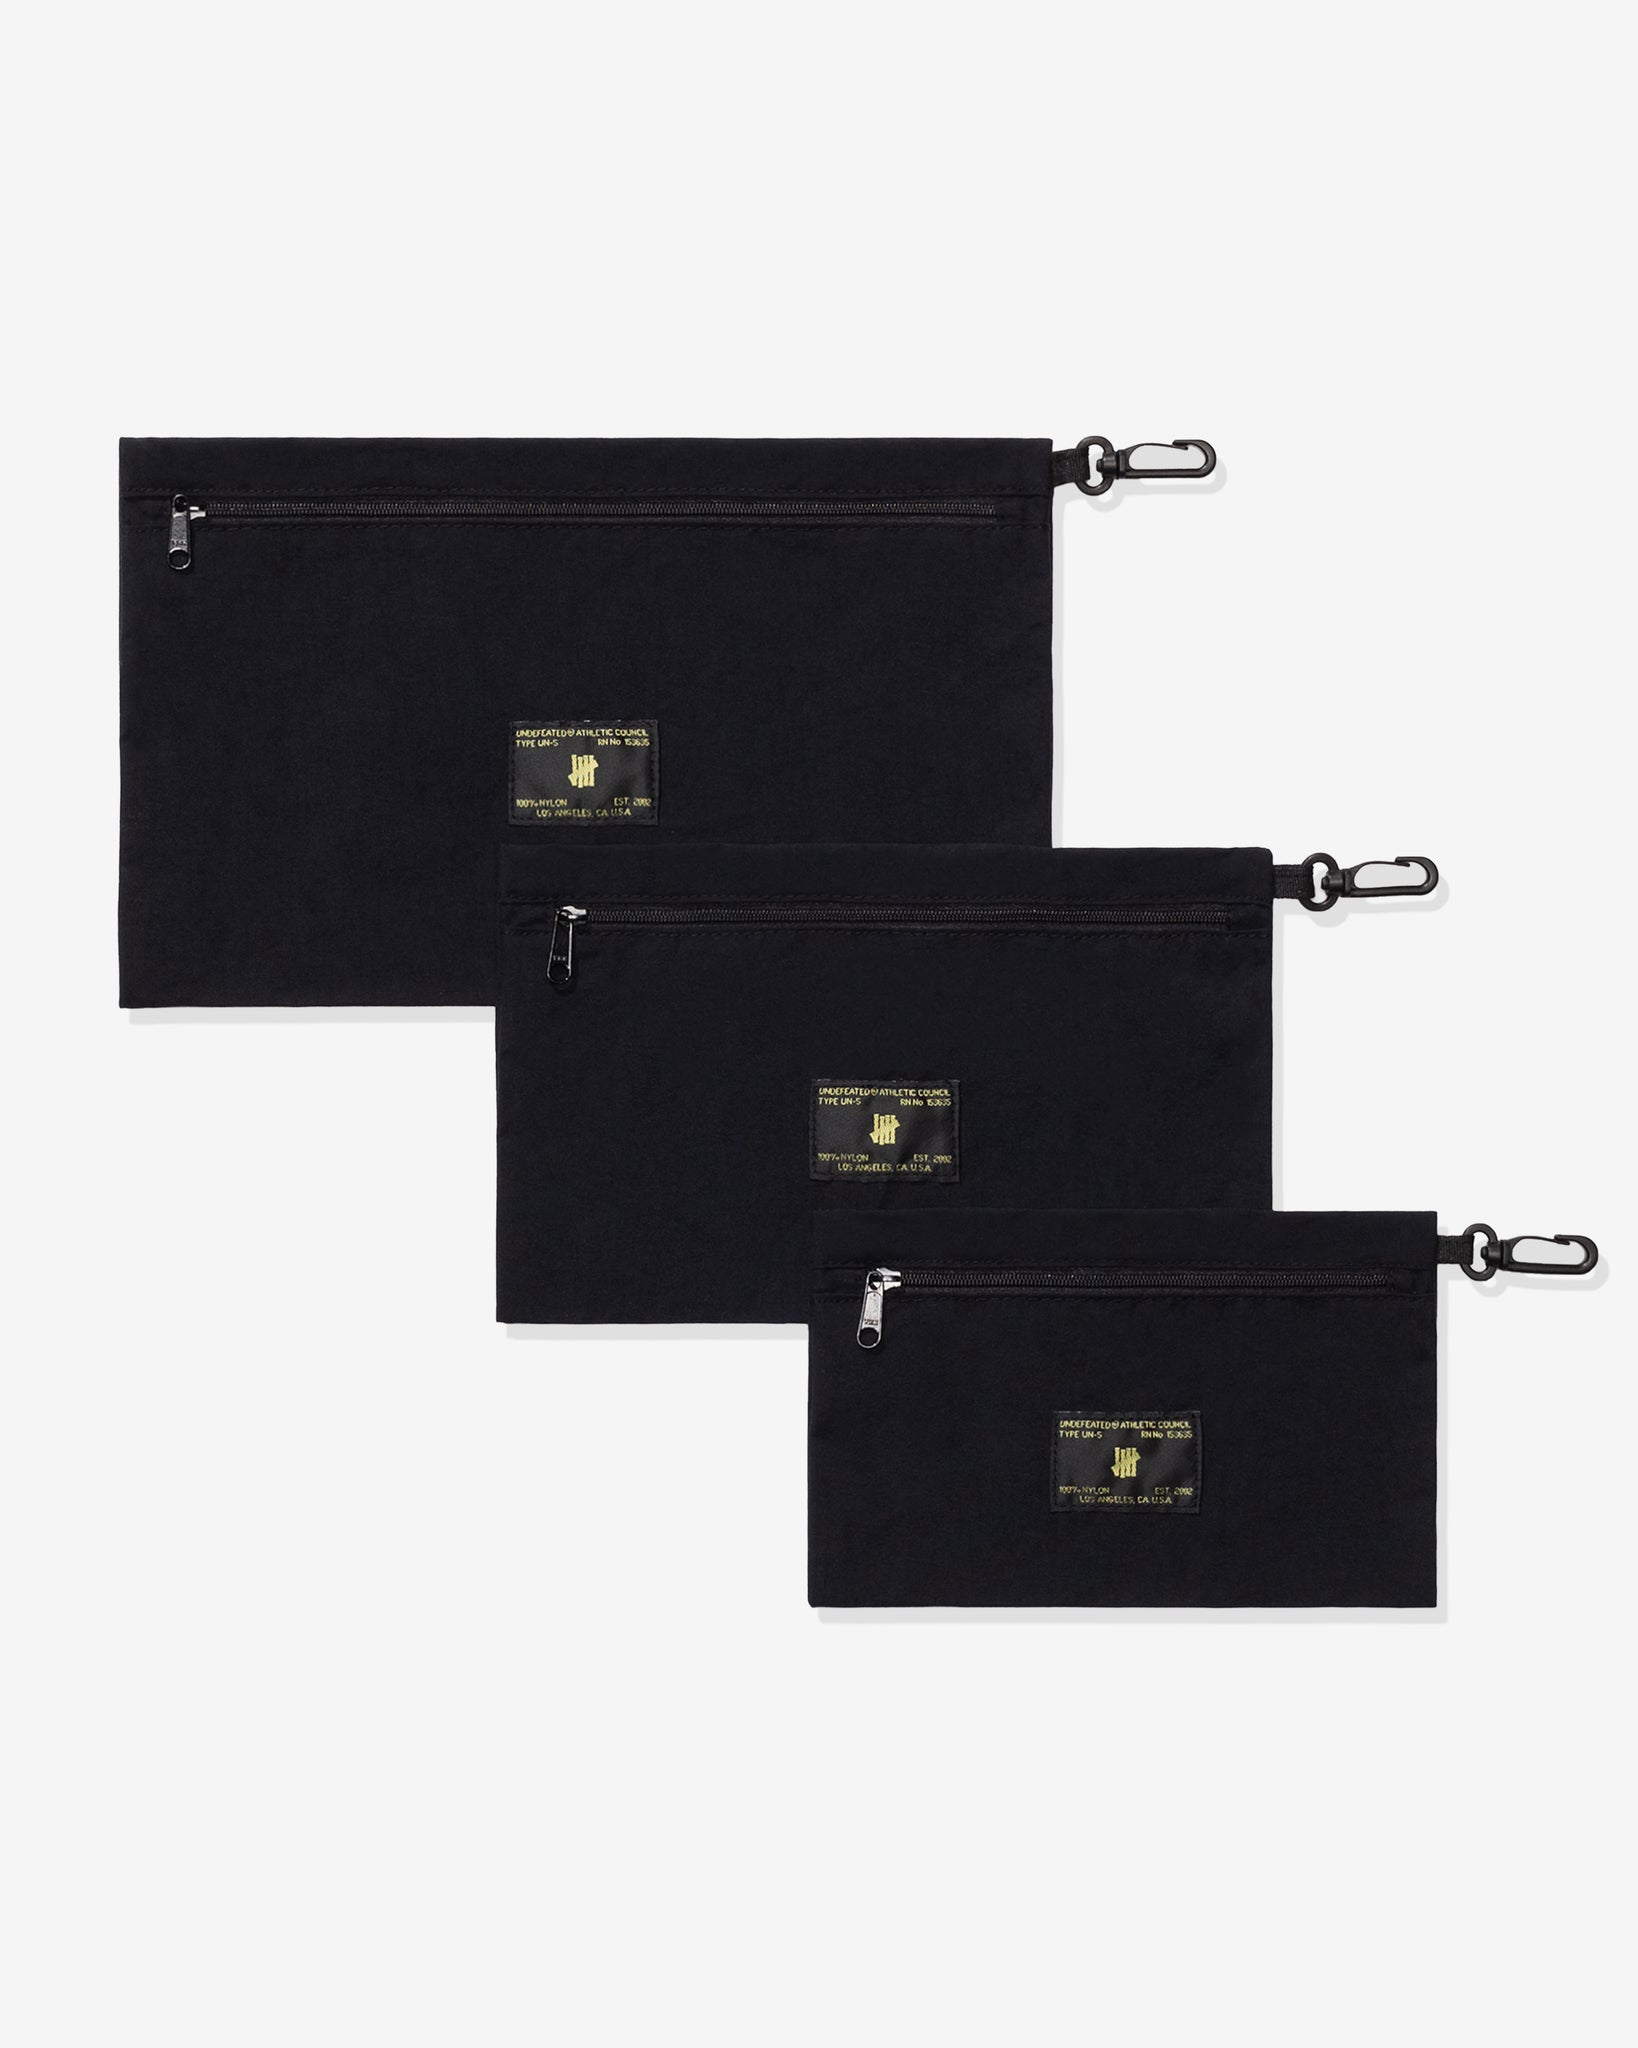 UNDEFEATED TRAVEL POUCH SET